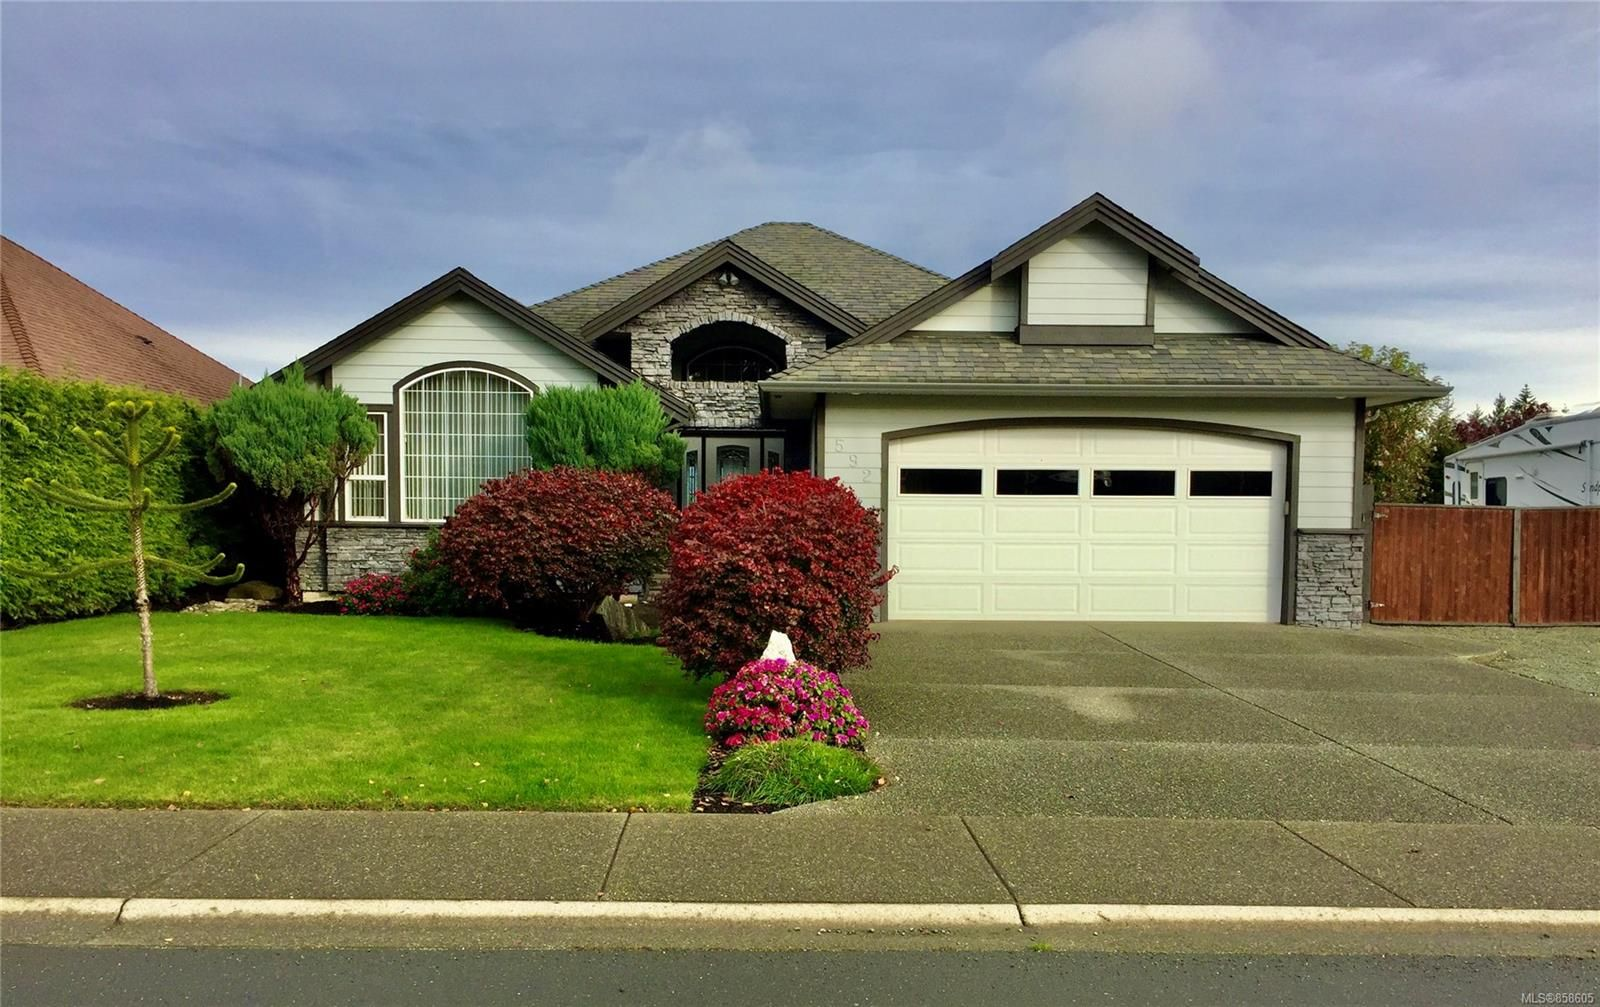 Main Photo: 592 Nelson Rd in : CR Willow Point House for sale (Campbell River)  : MLS®# 858605